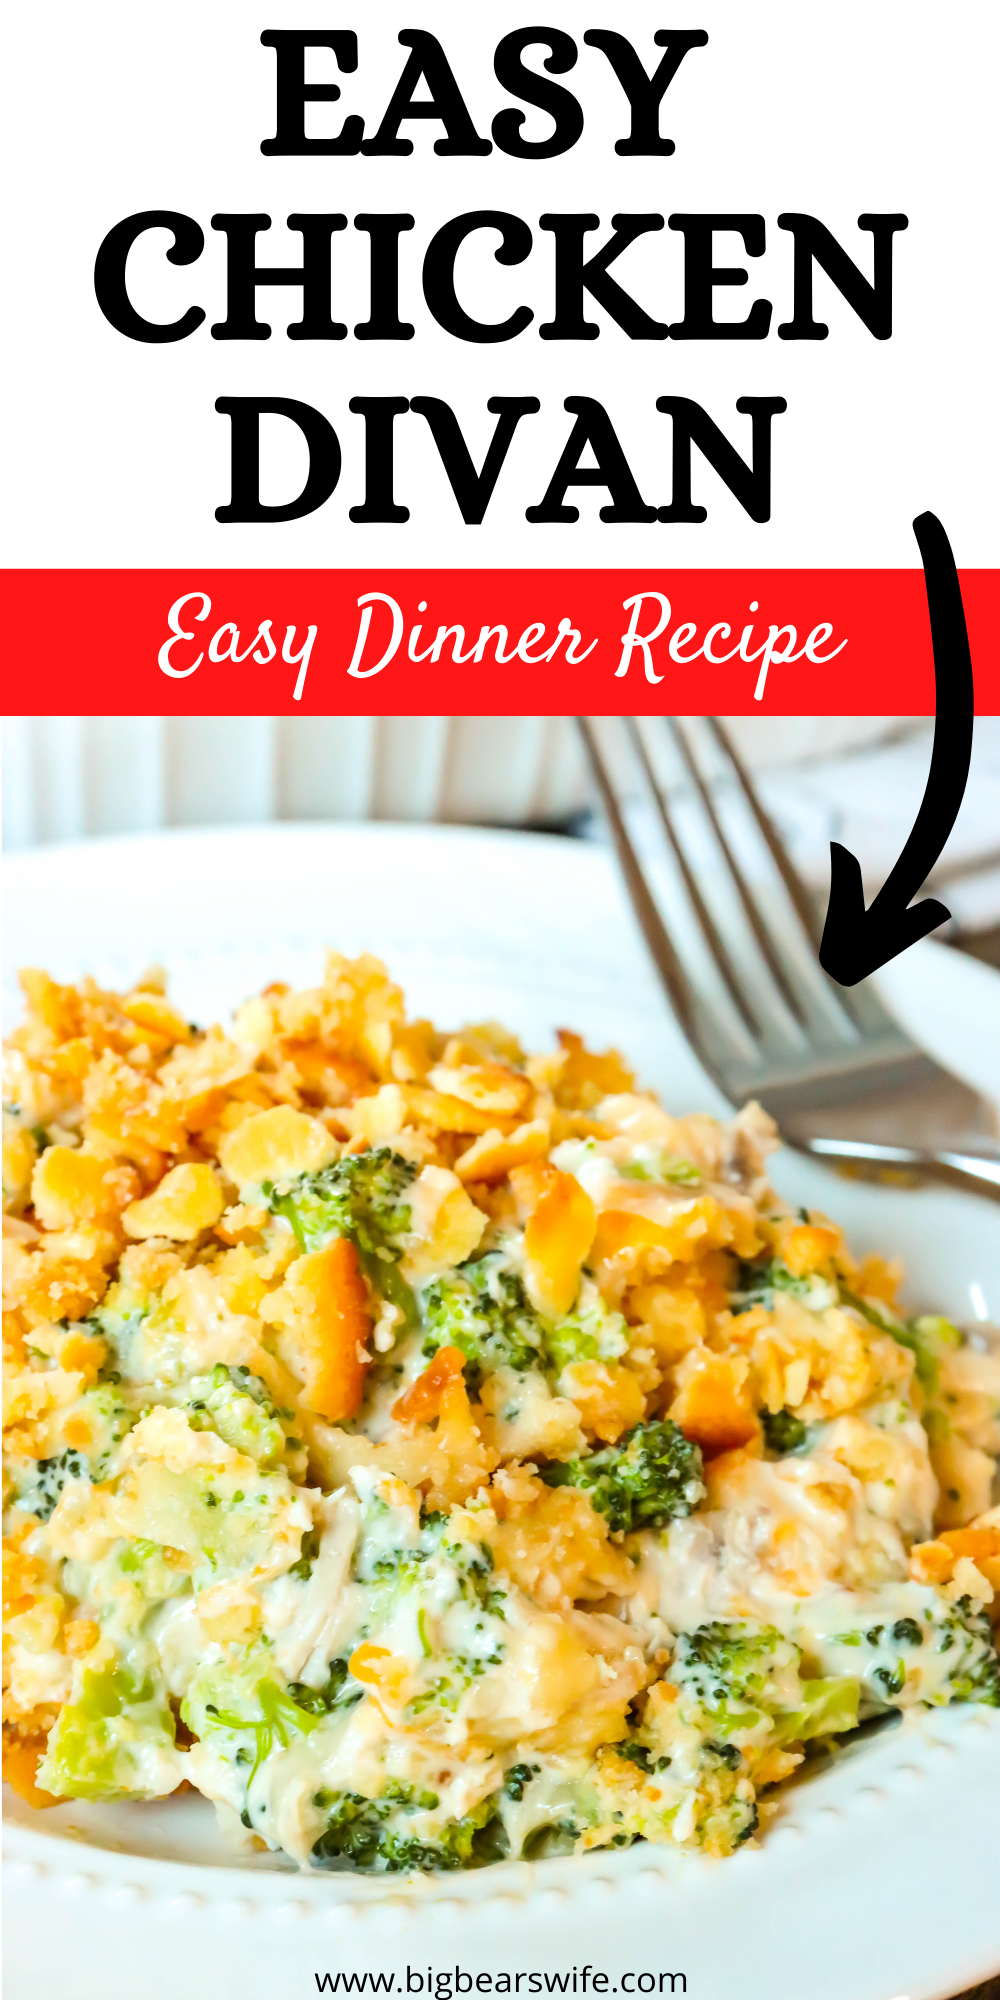 This Easy Chicken Divan Recipe is a delicious and creamy casserole that you're going to fall in love with! Broccoli, chicken and a creamy sauce are mixed together in this casserole with 2 types of cheese and topped with butter crackers!  via @bigbearswife